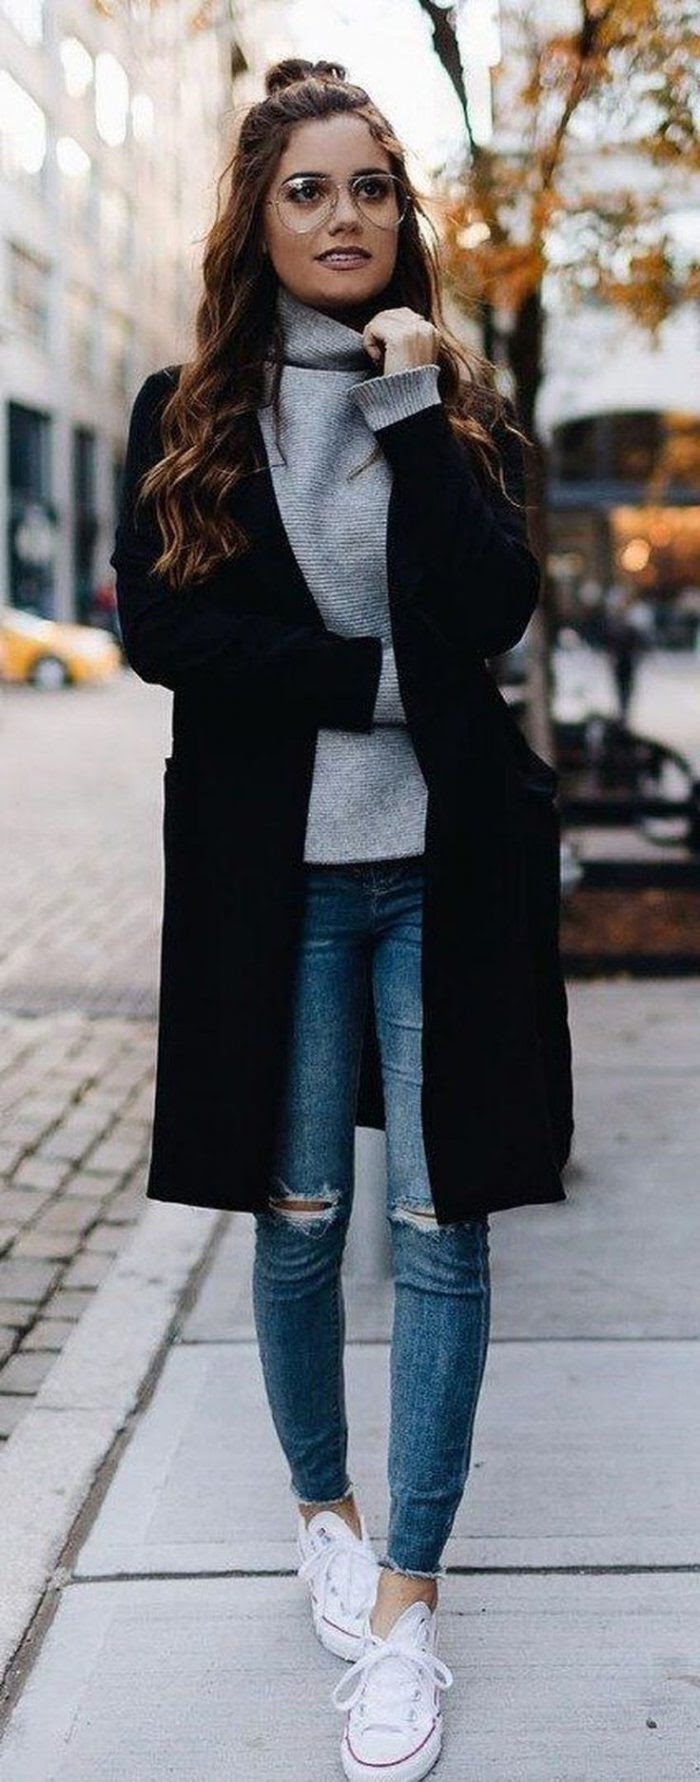 winter outfits for women street style 2020